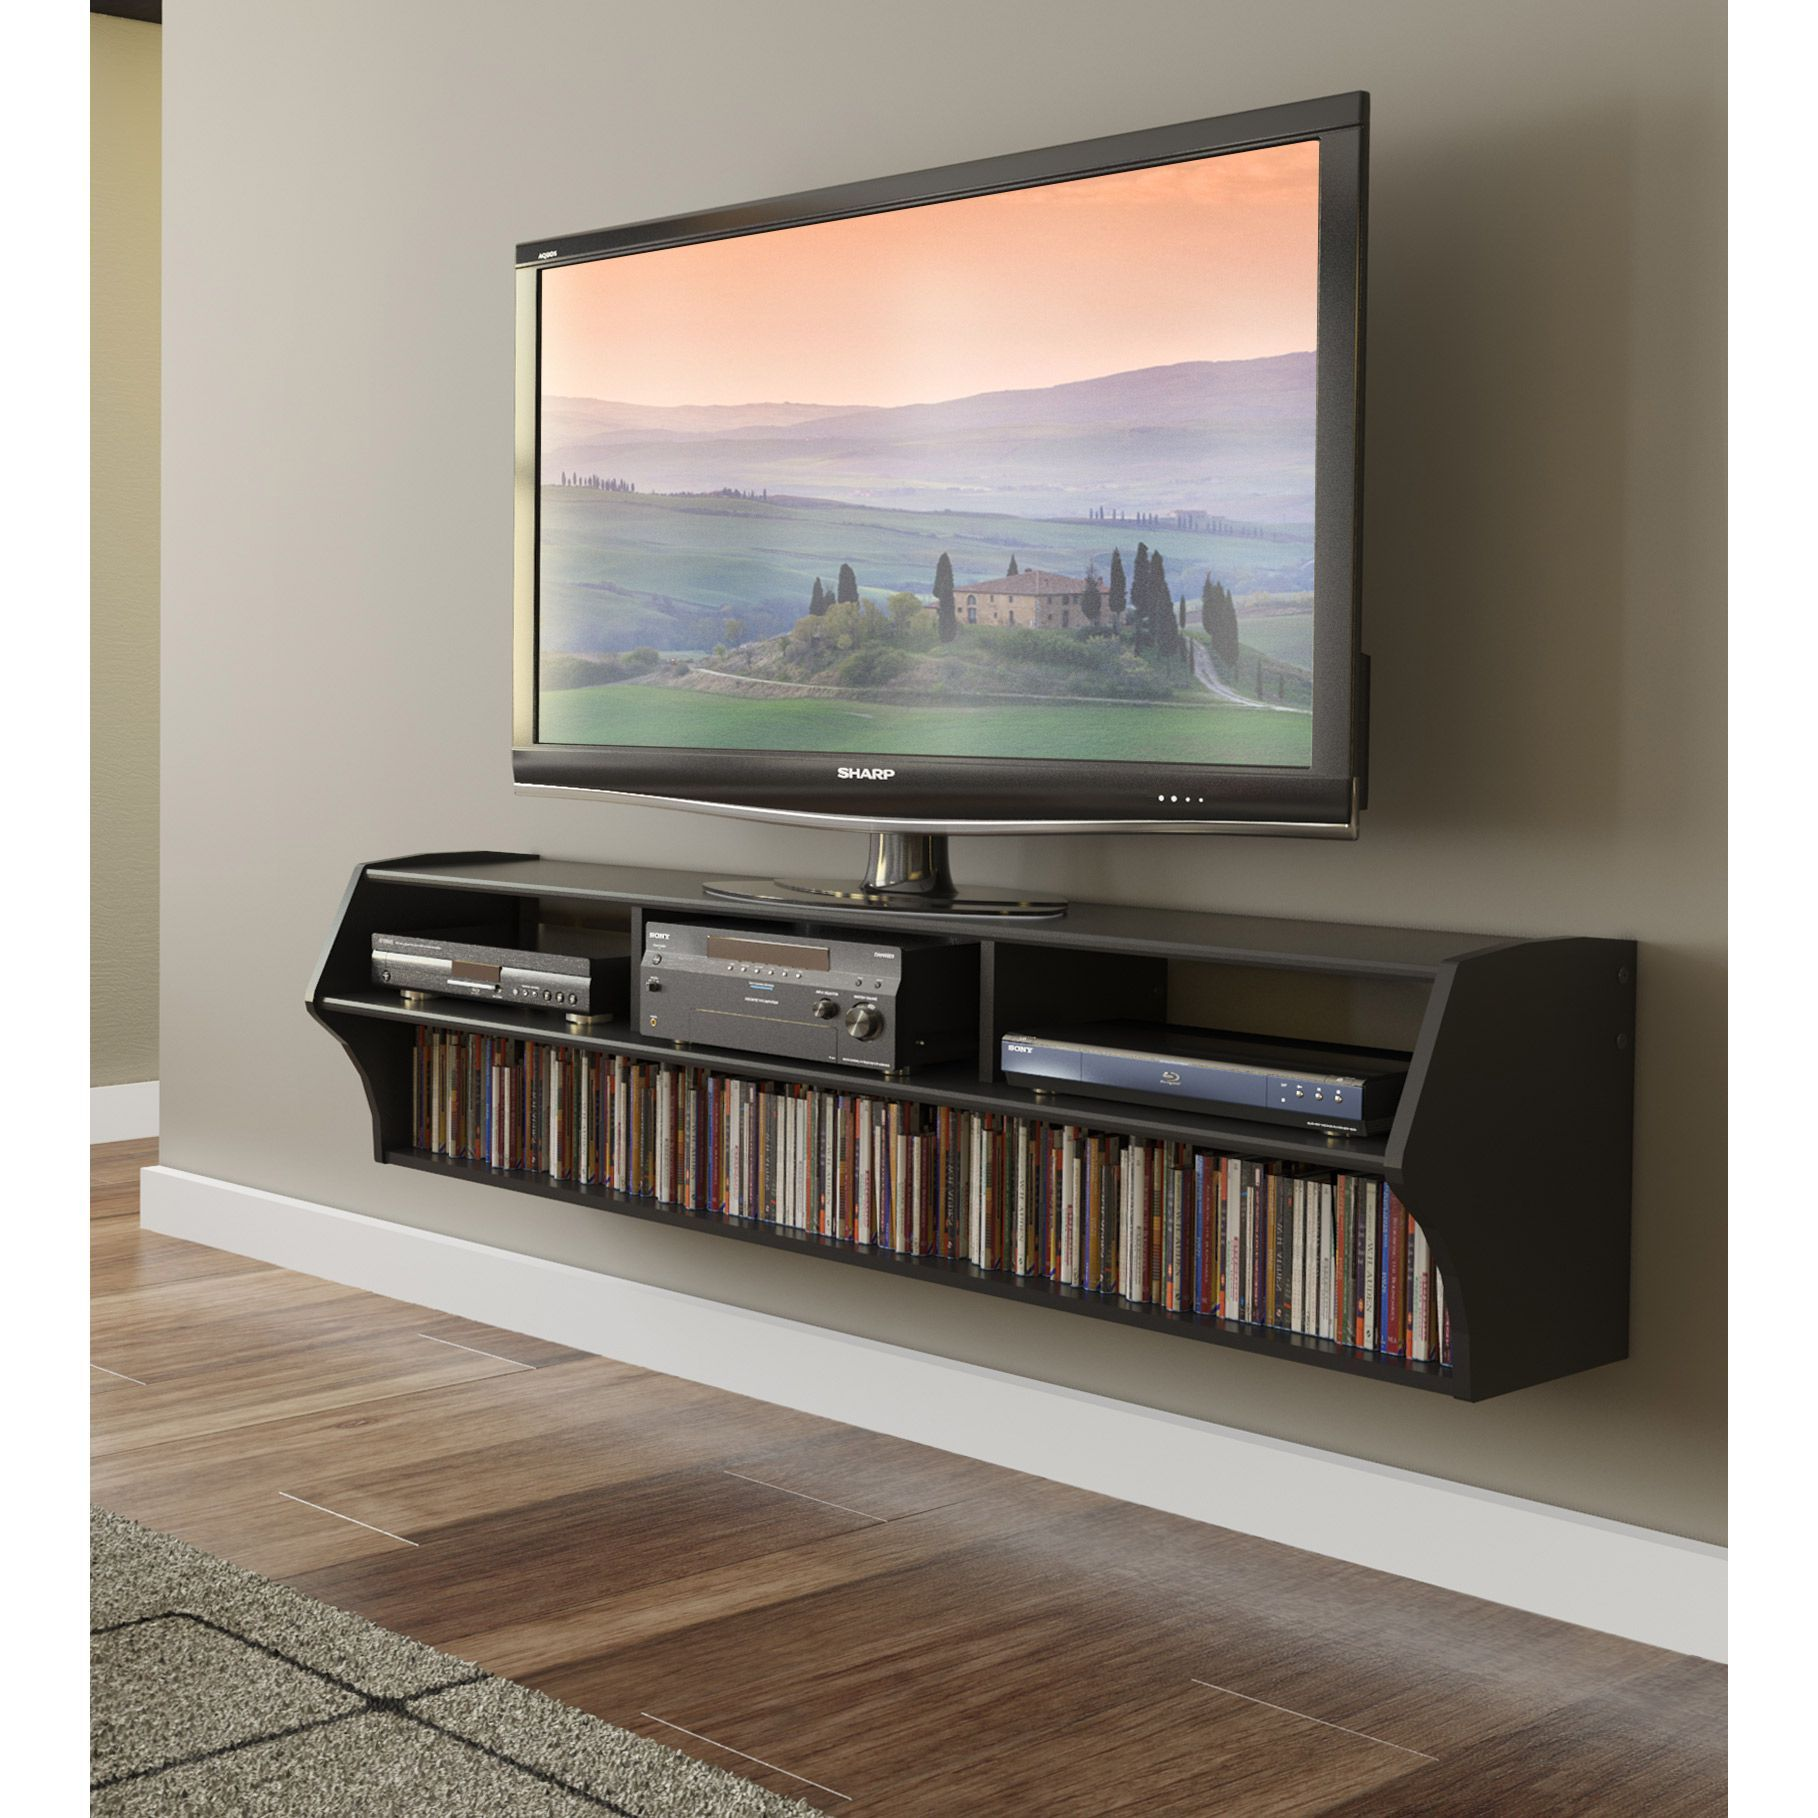 Black altus plus 58 in floating tv stand media console storage shelf flat screen in home garden furniture entertainment units tv stands